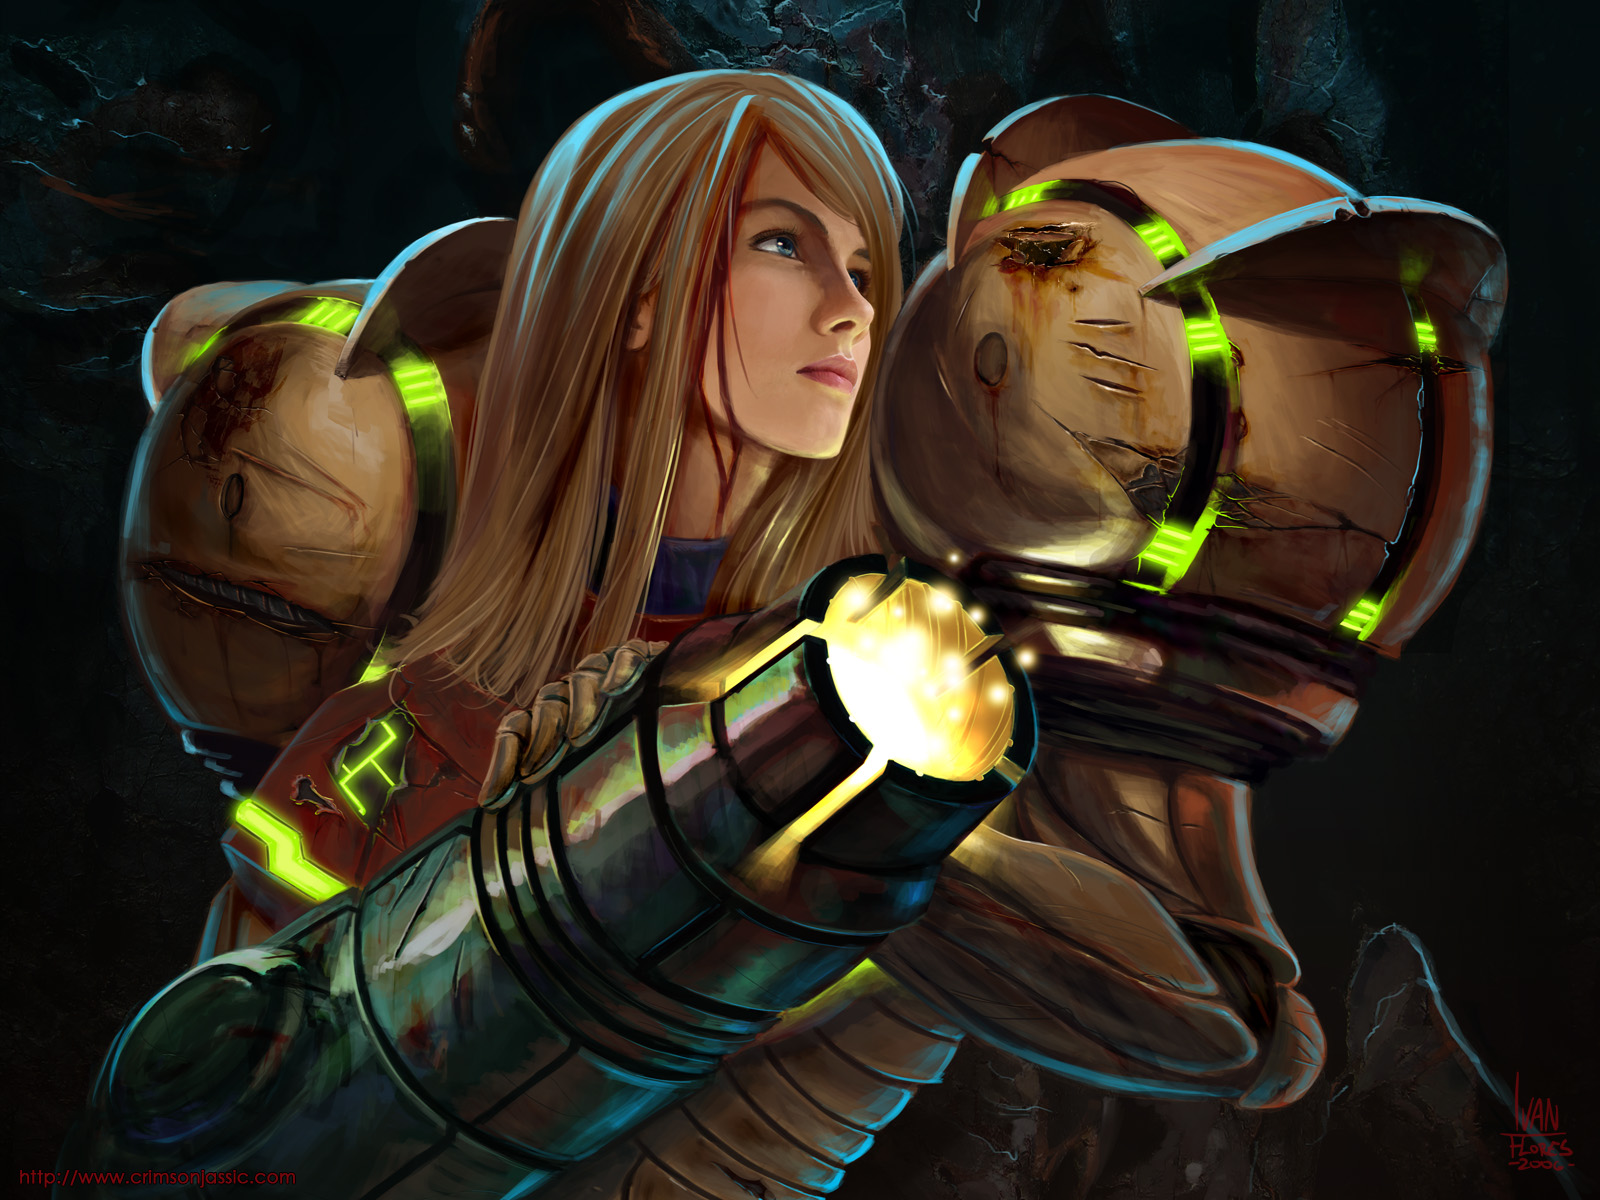 1600x1200 Metroid Prime Samus Aran desktop wallpapers and stock photos